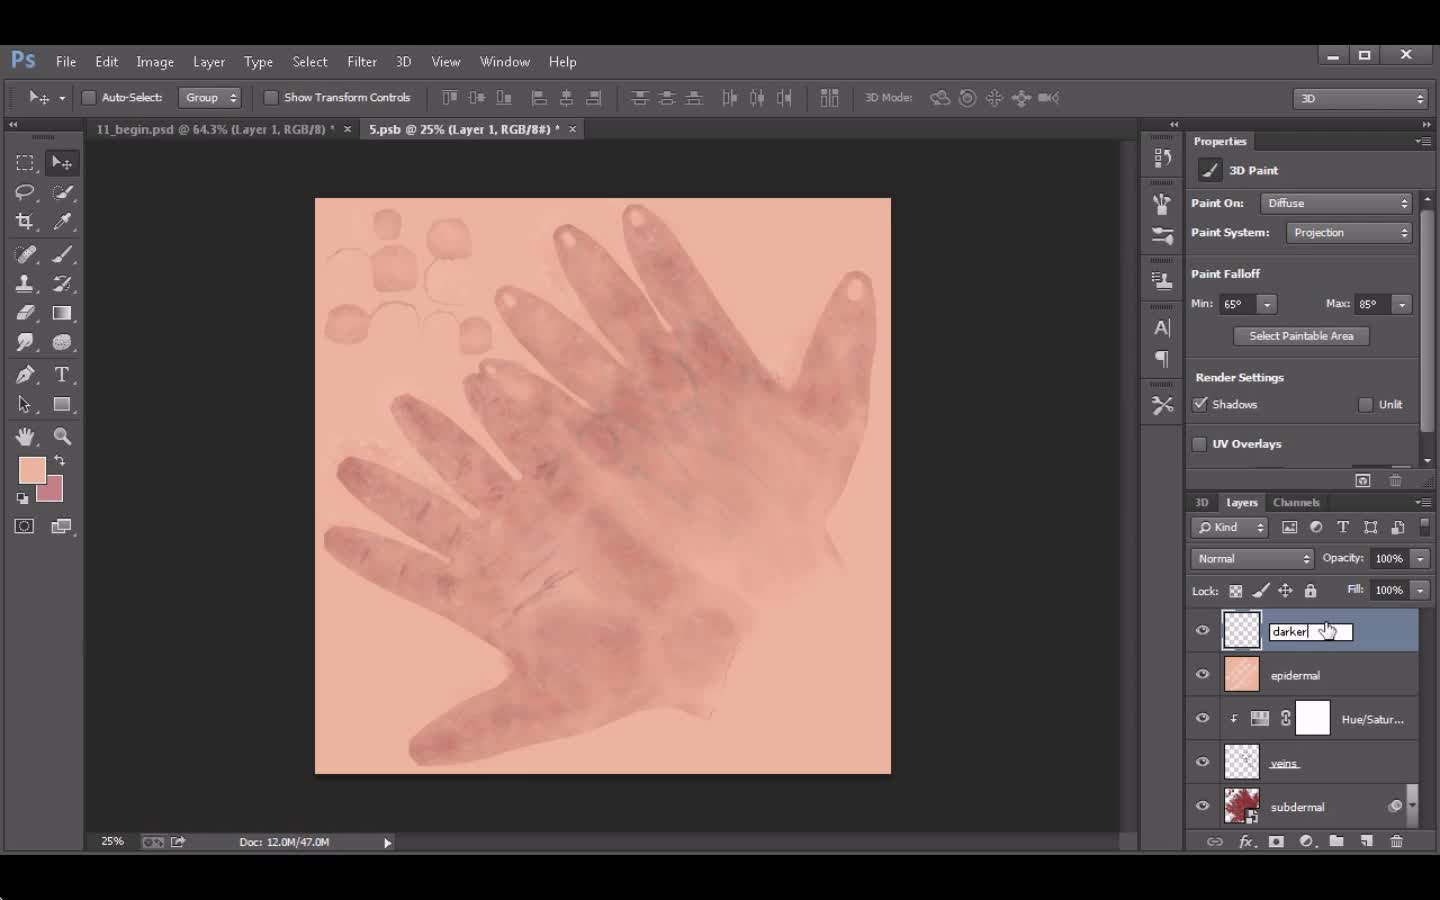 Eddie Russell - Painting Realistic 3D Skin Textures in Photoshop: Hands